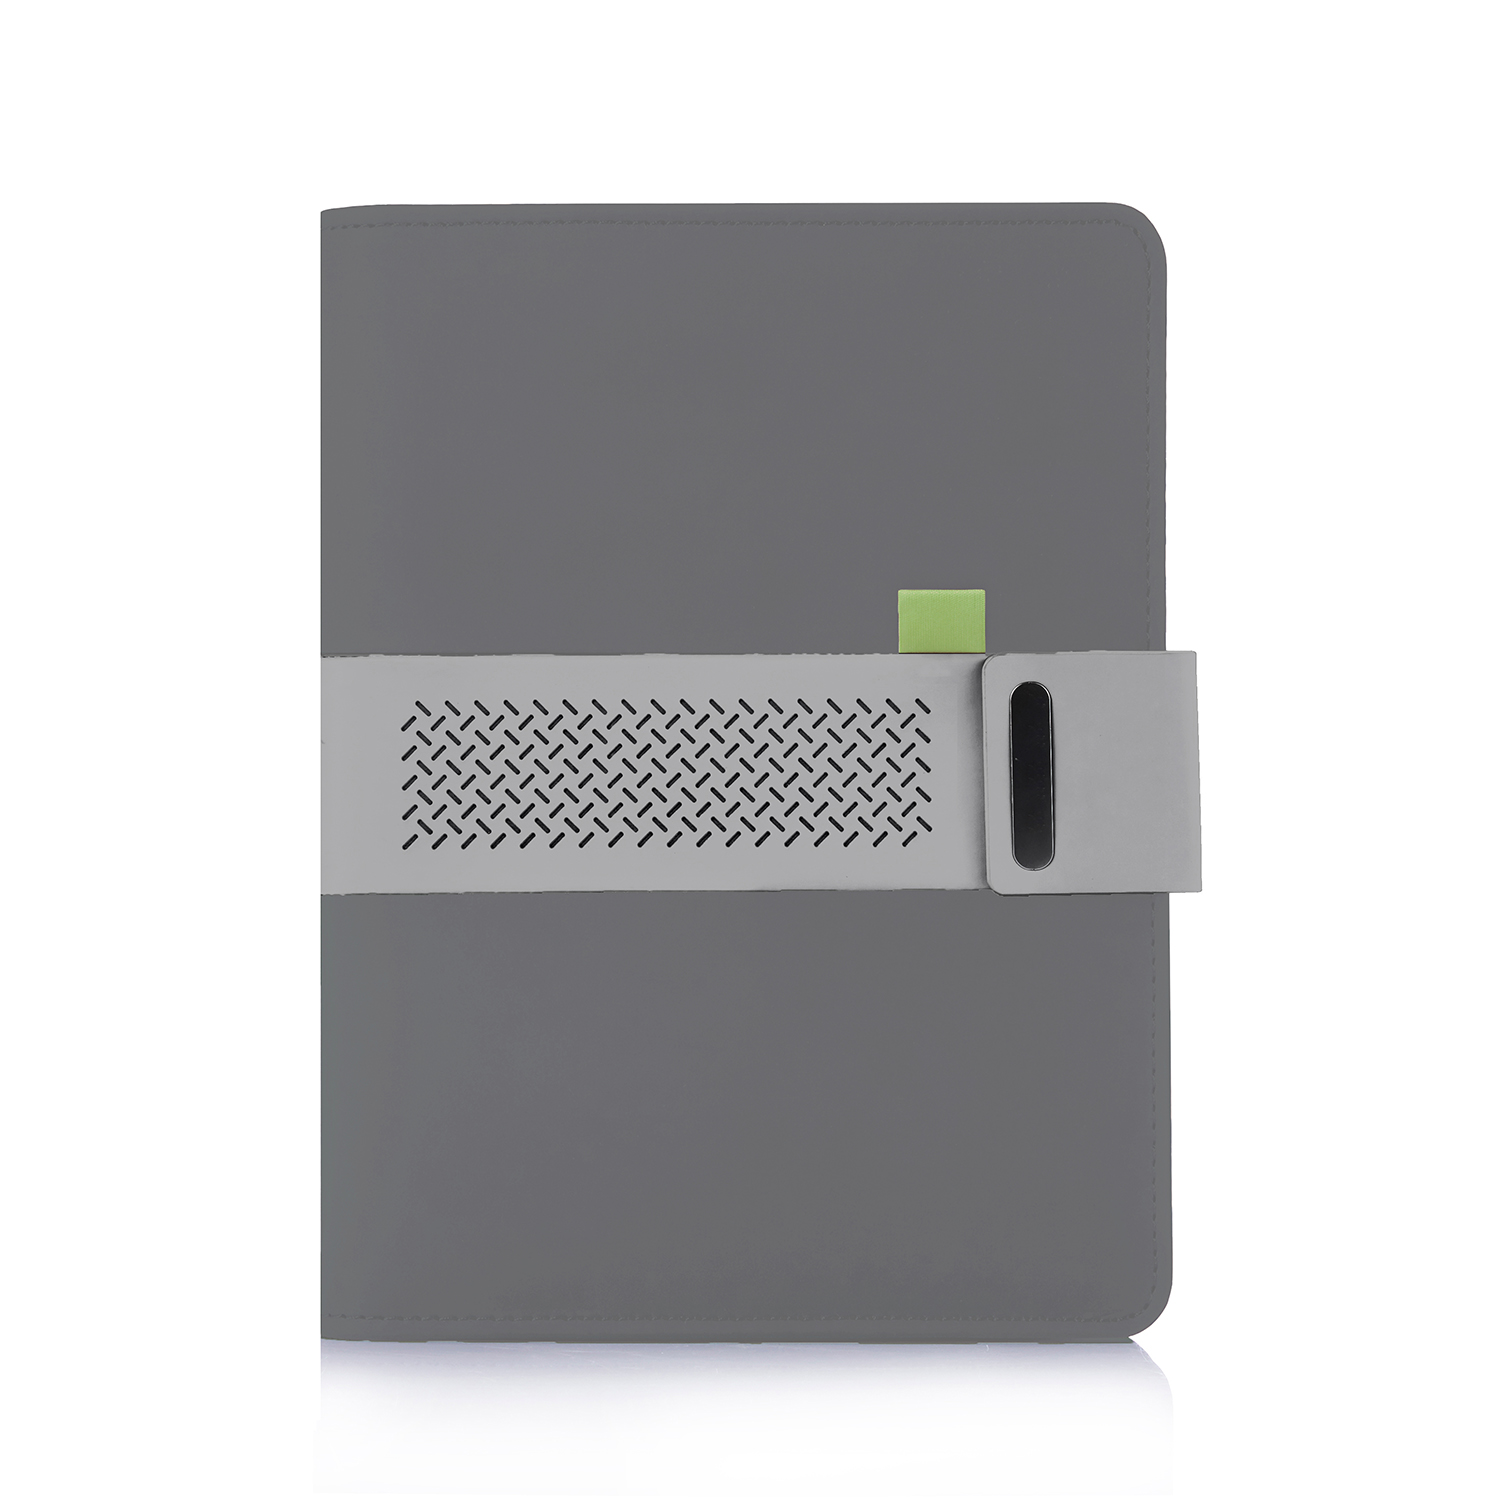 Folder 987 (A4 Document folder - hmi62987-03 (Grey)